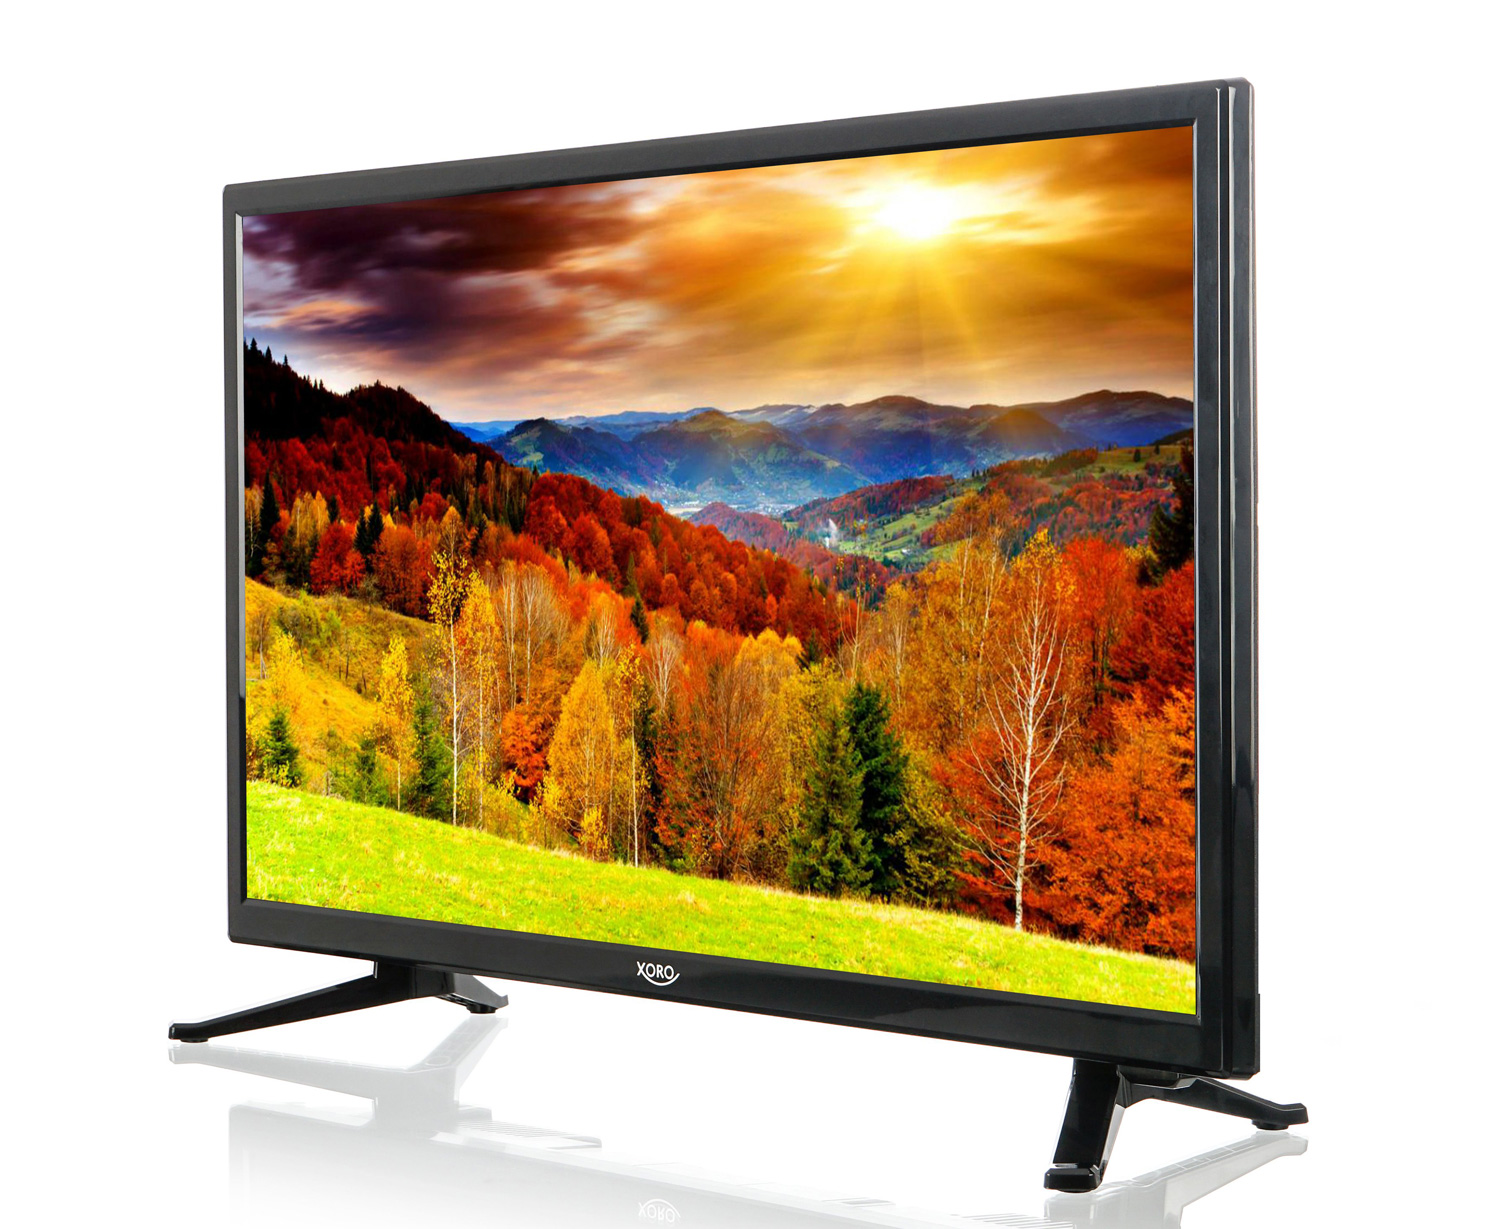 xoro fernseher xoro htc 2232d lcd fernseher tests. Black Bedroom Furniture Sets. Home Design Ideas